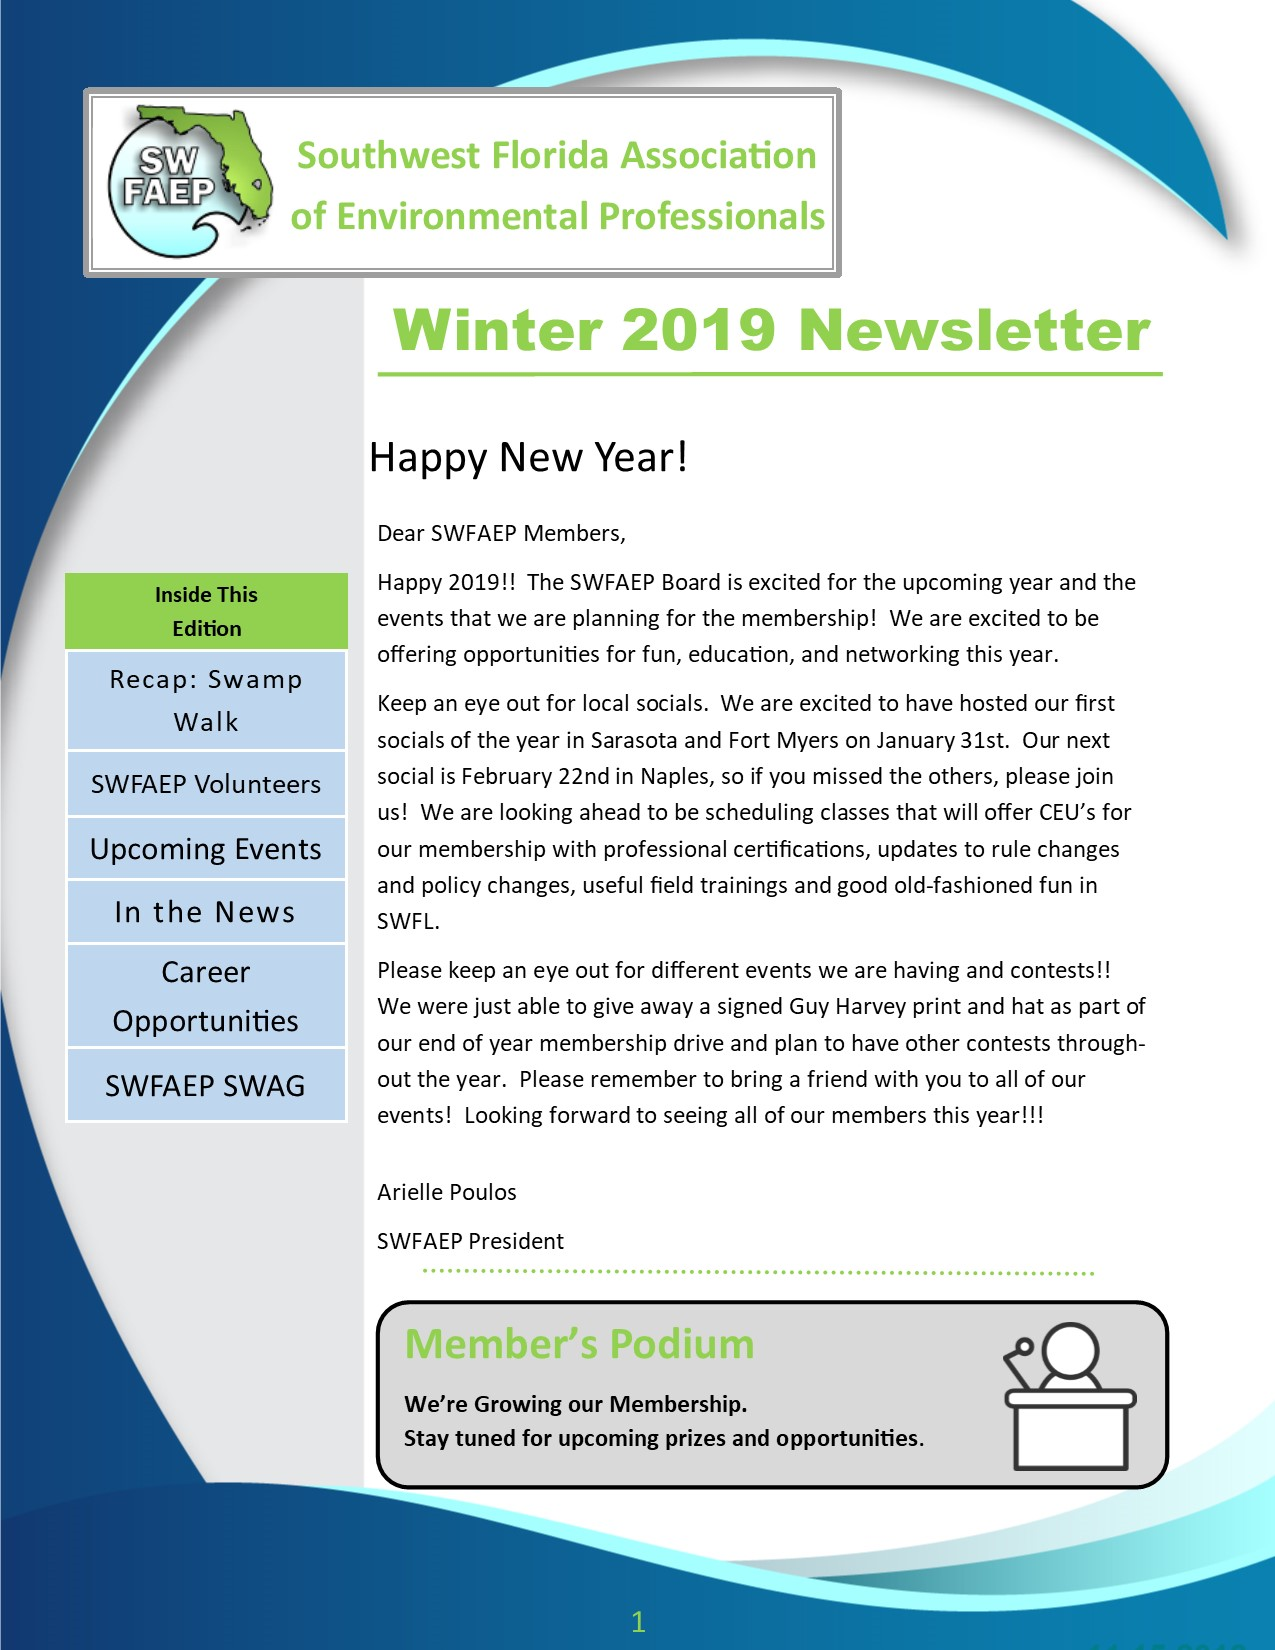 Winter 2019 Newsletter.jpg